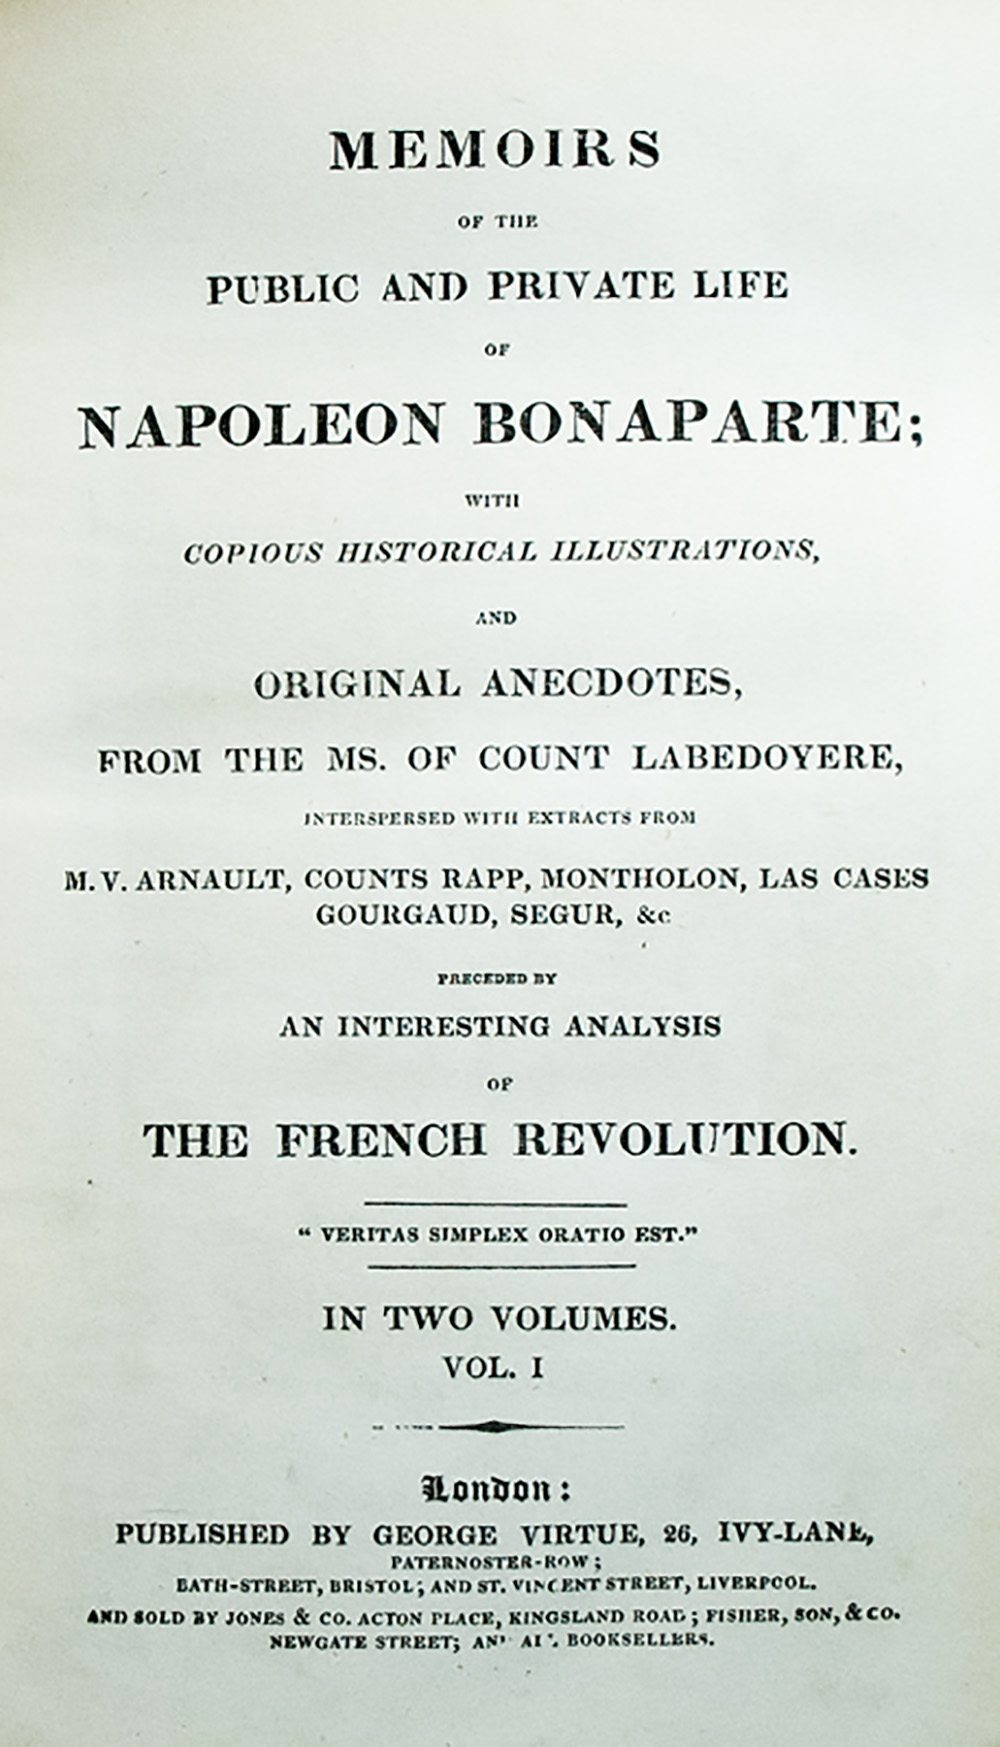 the life of napoleon bonaparte This page provides a brief summary of scott's work on the life of napoleon buonaparte , the background to its creation and how it was received at the time by critics and the public.